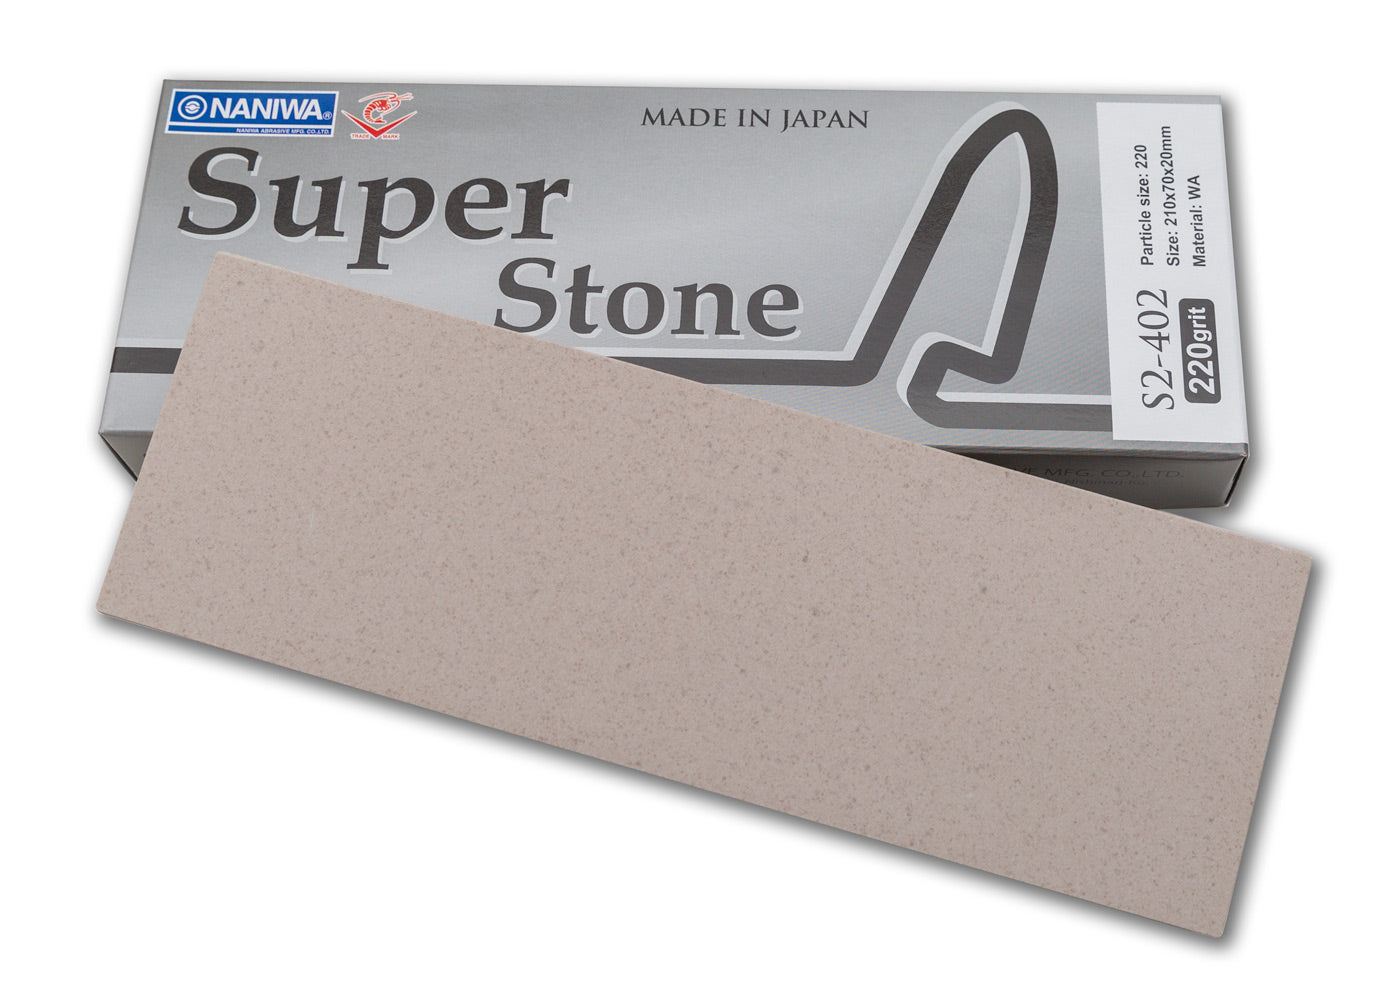 Naniwa Super-Stone Japanese Whetstone Sharpening Stone, 220 grit